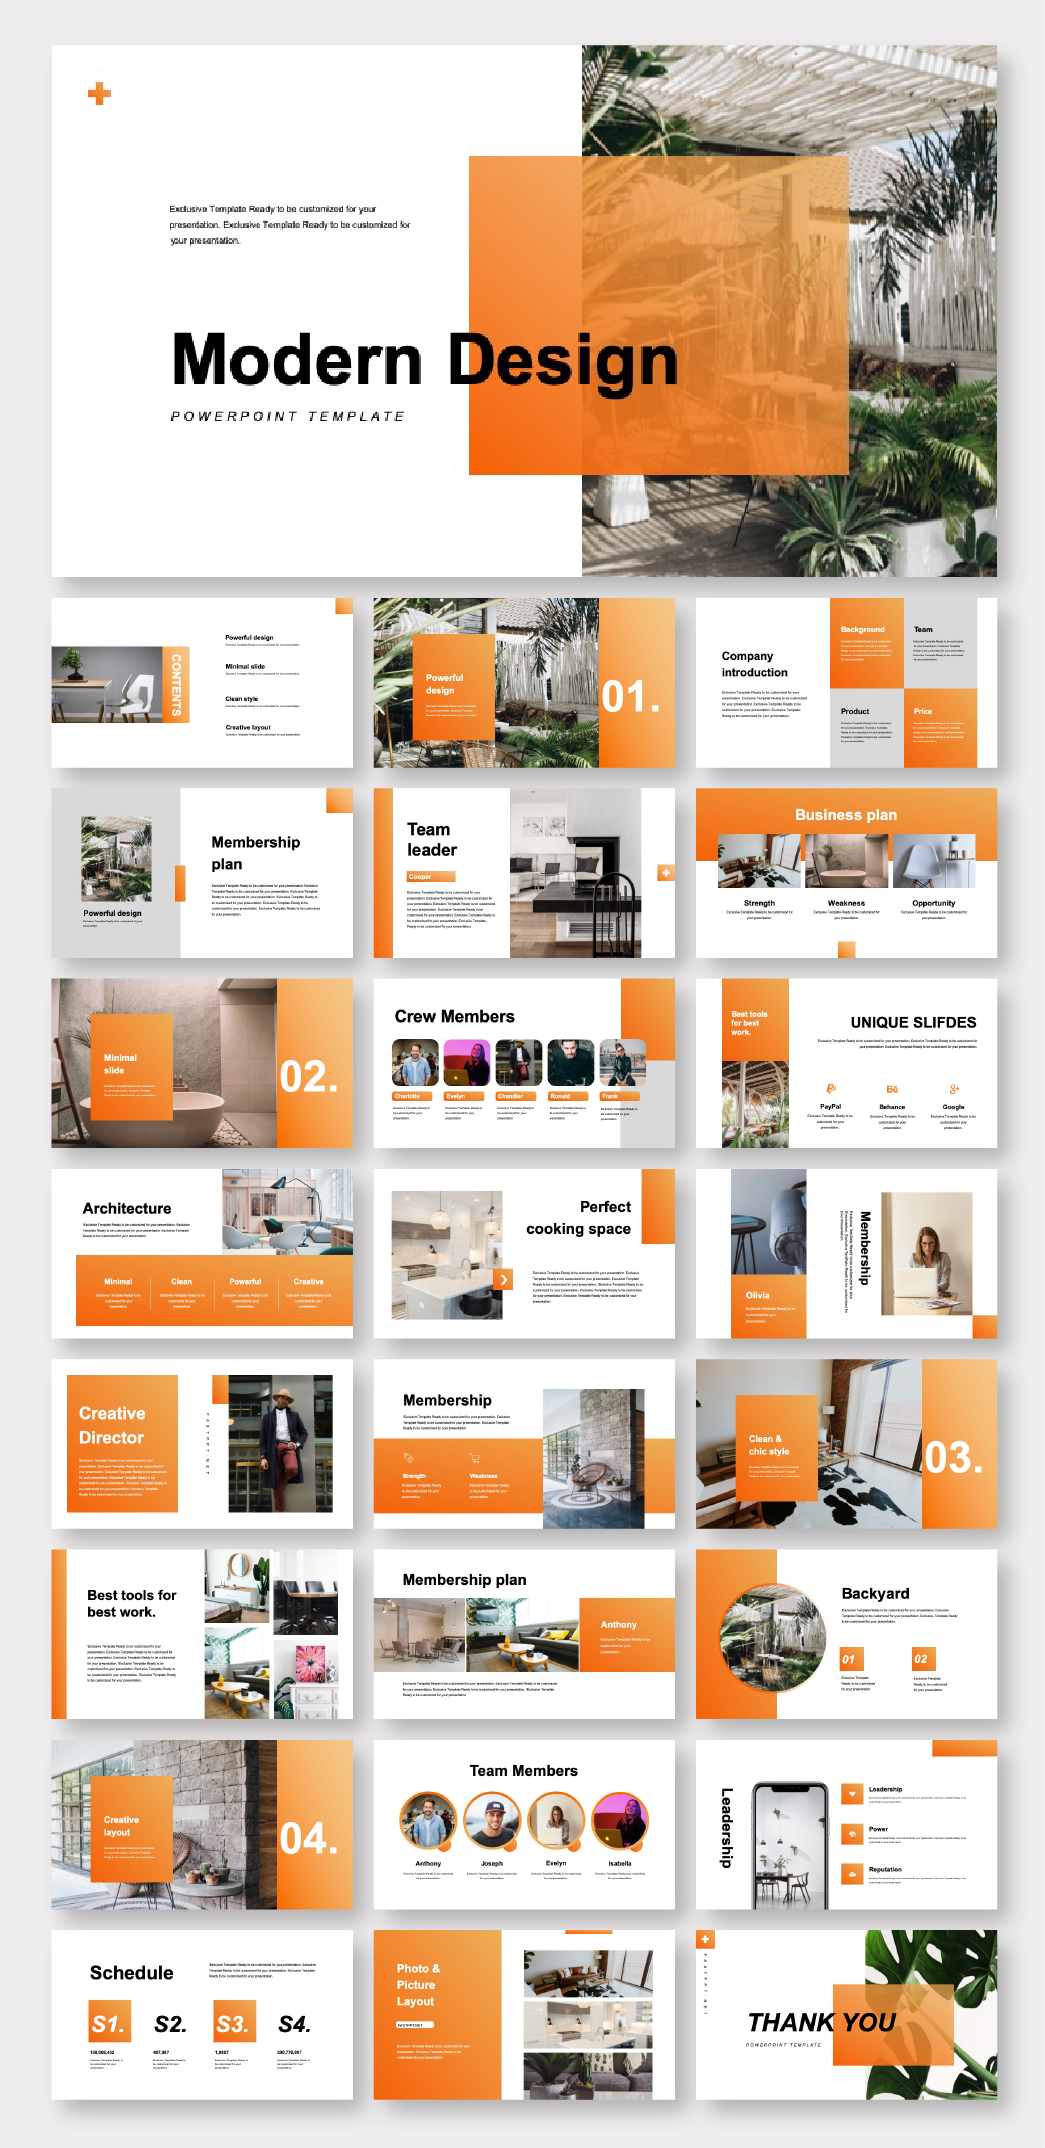 Clean Modern Design Report Presentation Template – Original and high quality PowerPoint Templates download